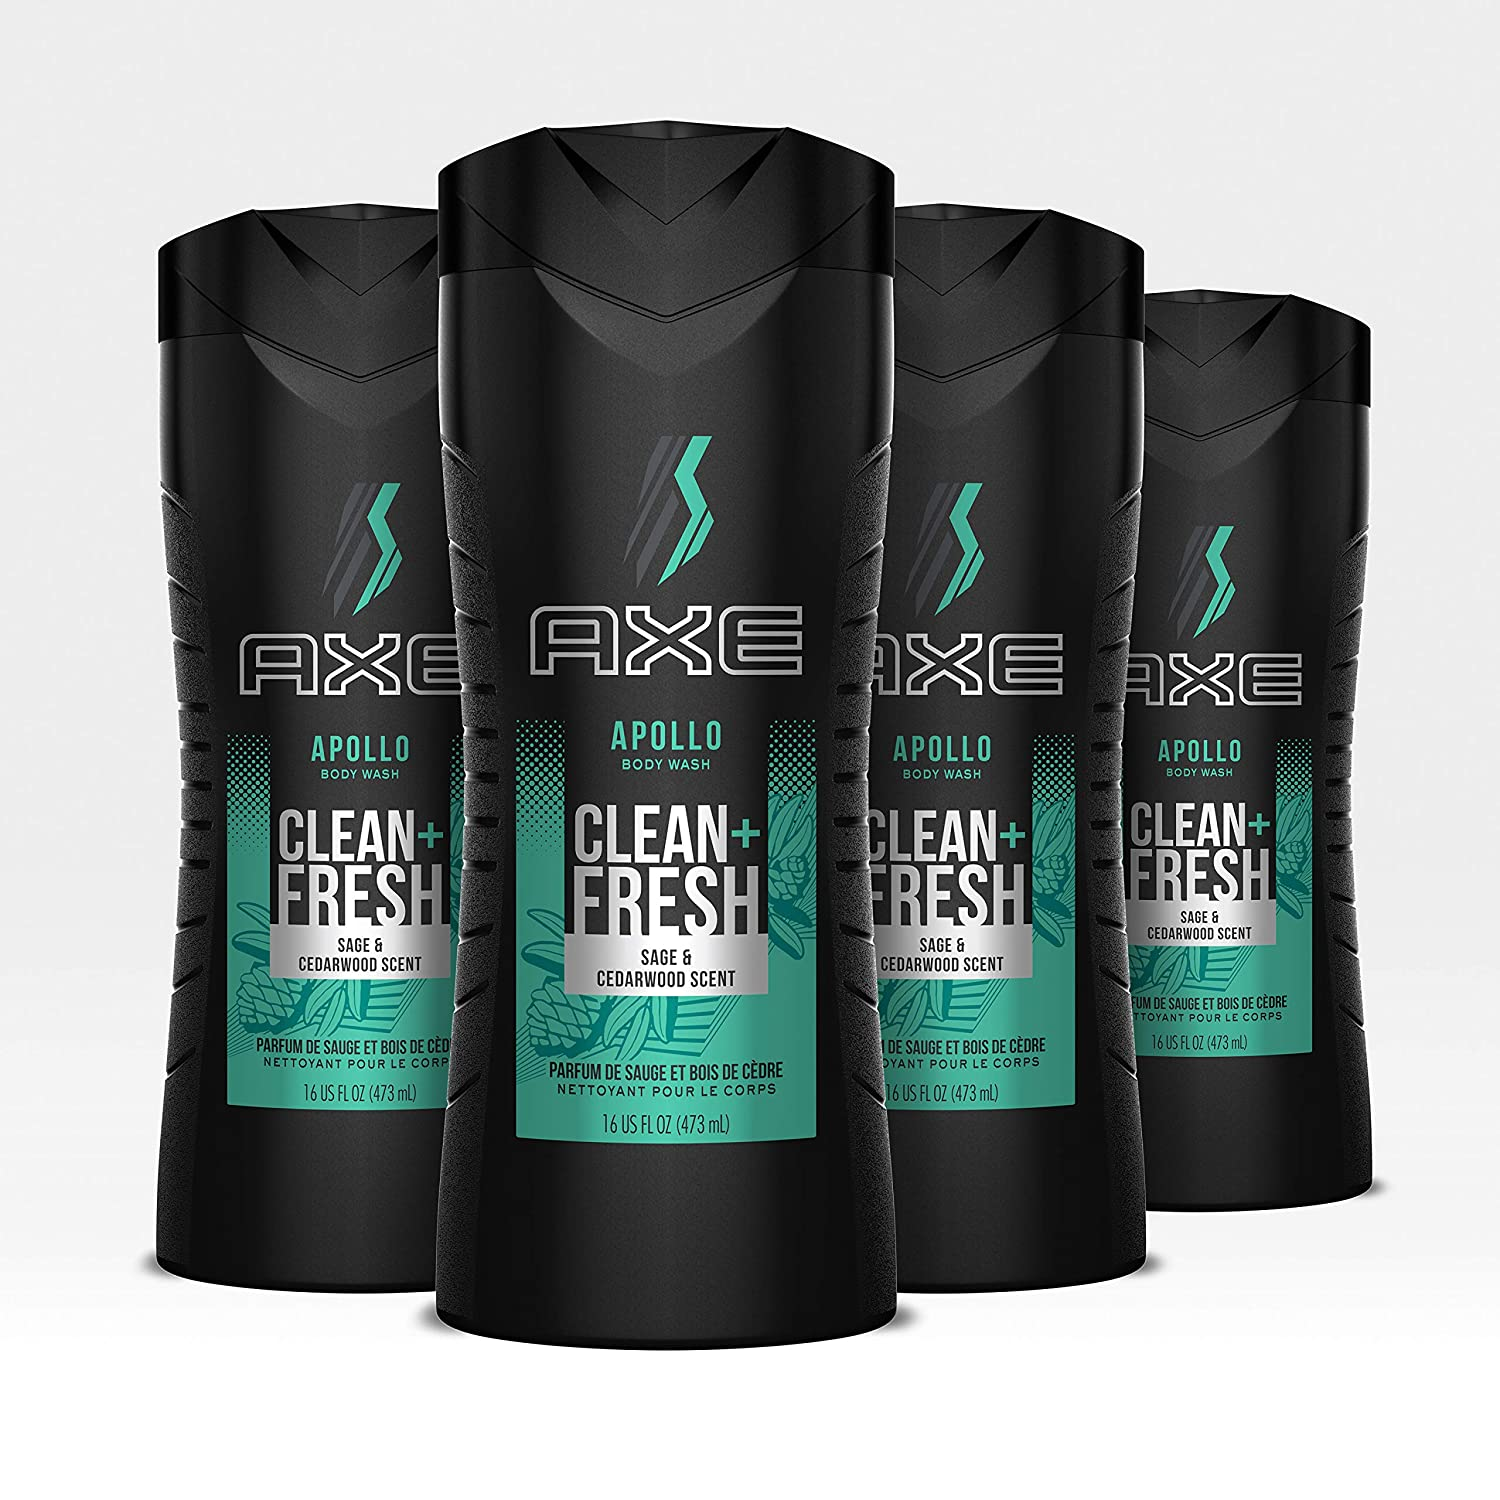 Axe Apollo Men's Body Wash For a Clean and Fresh feel Body, Face and Hair Dermatologist Tested, 16 Fl Oz, Pack of 4